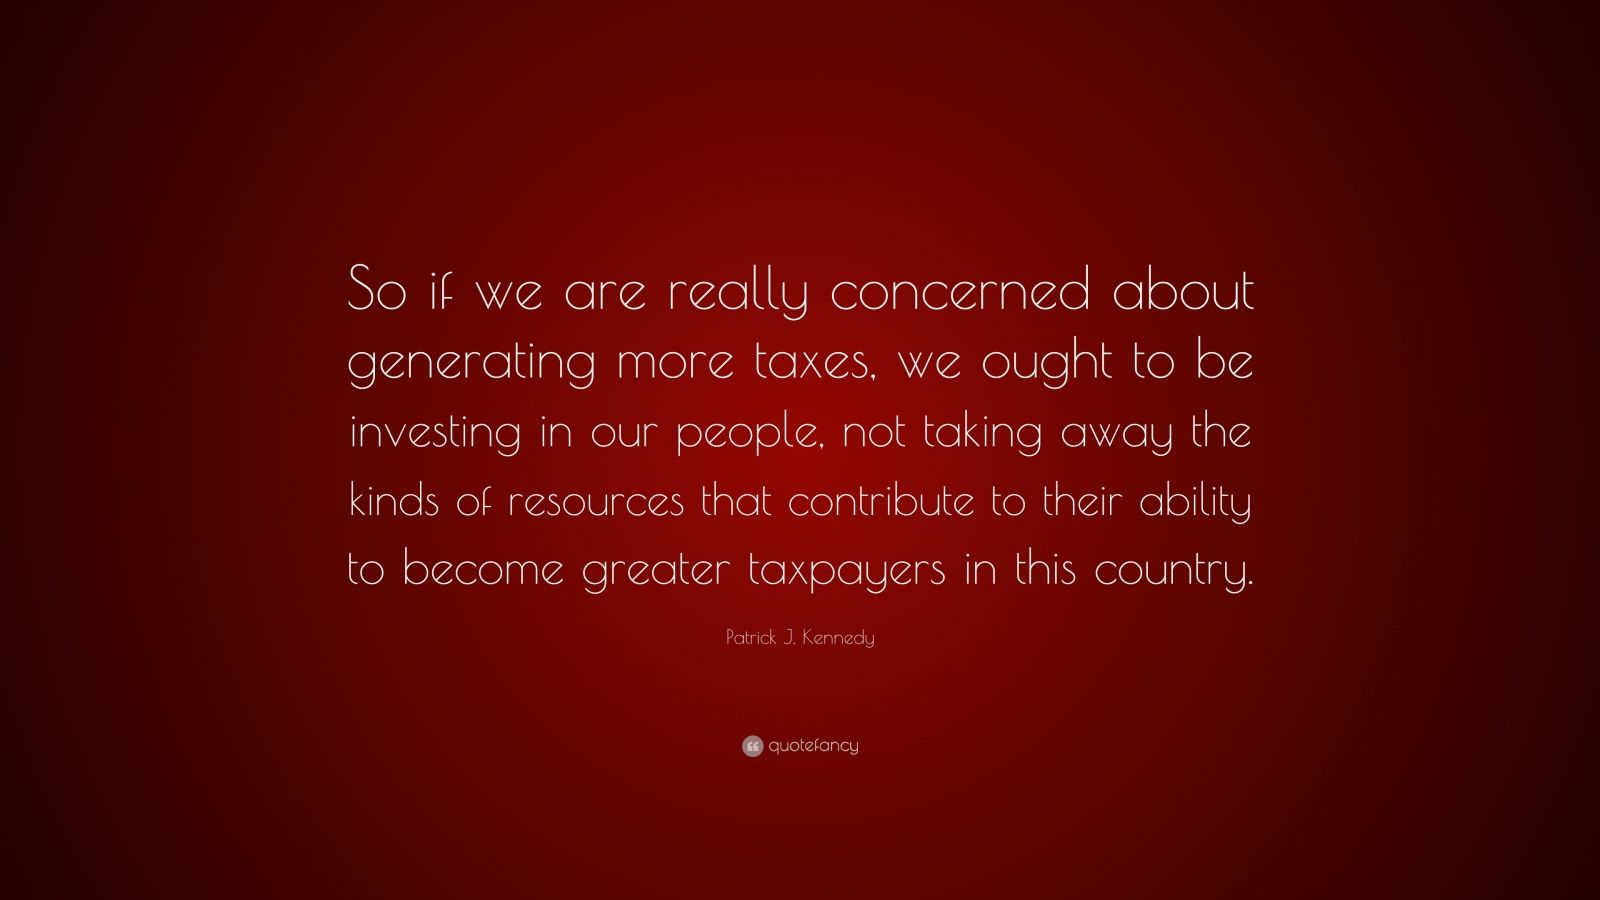 """Patrick J. Kennedy Quote: """"So if we are really concerned about generating more taxes, we ought to be investing in our people, not taking away the kinds of resources that contribute to their ability to become greater taxpayers in this country."""""""